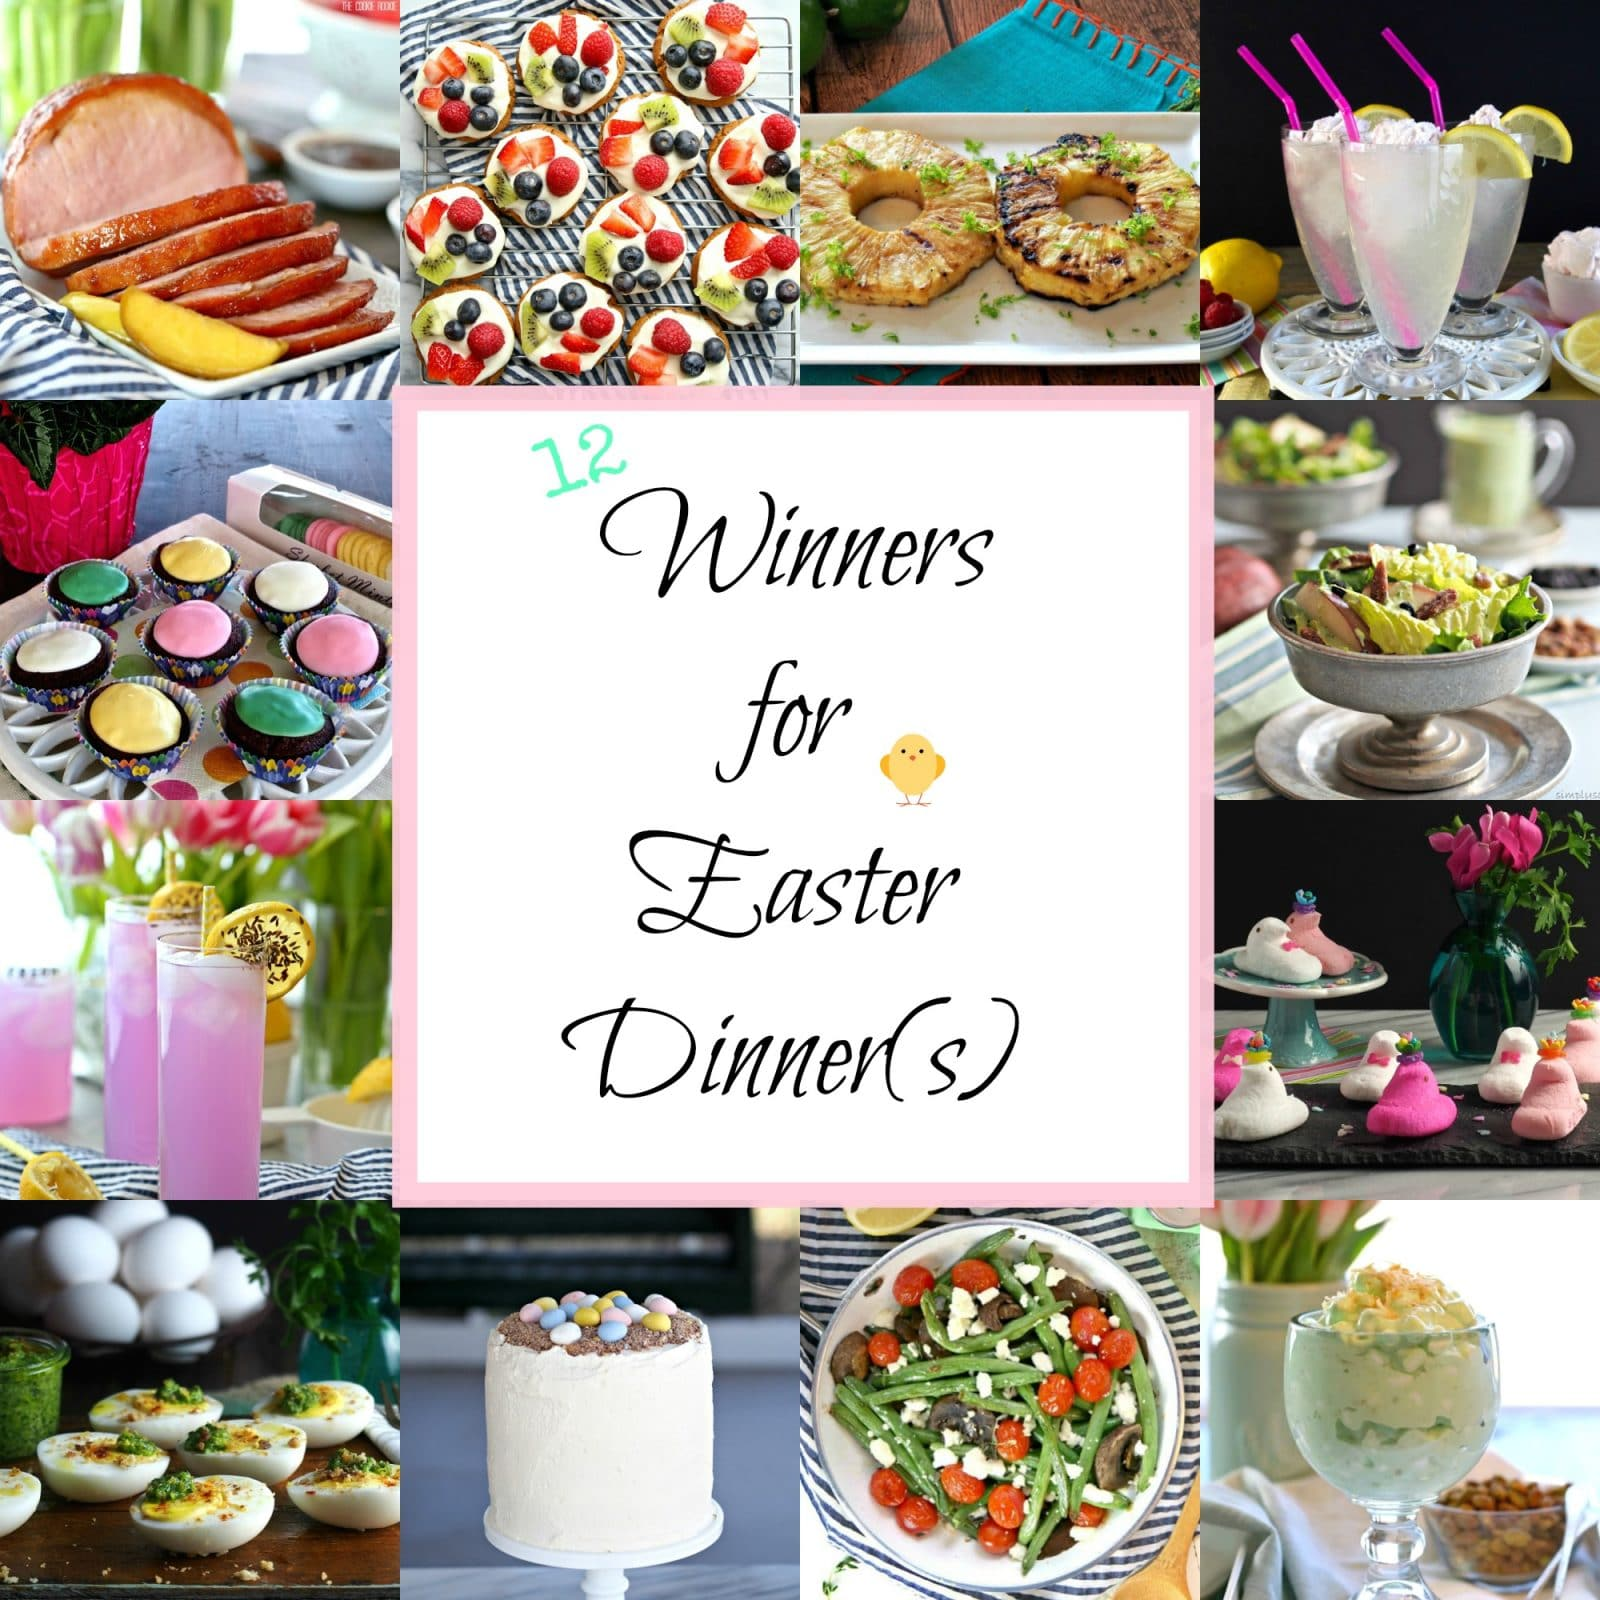 12 Winners for Easter Dinner(s). Twelve winning recipes from drinks to desserts to make Easter dinner the best ever - from Simply Sated & The Cookie Rookie